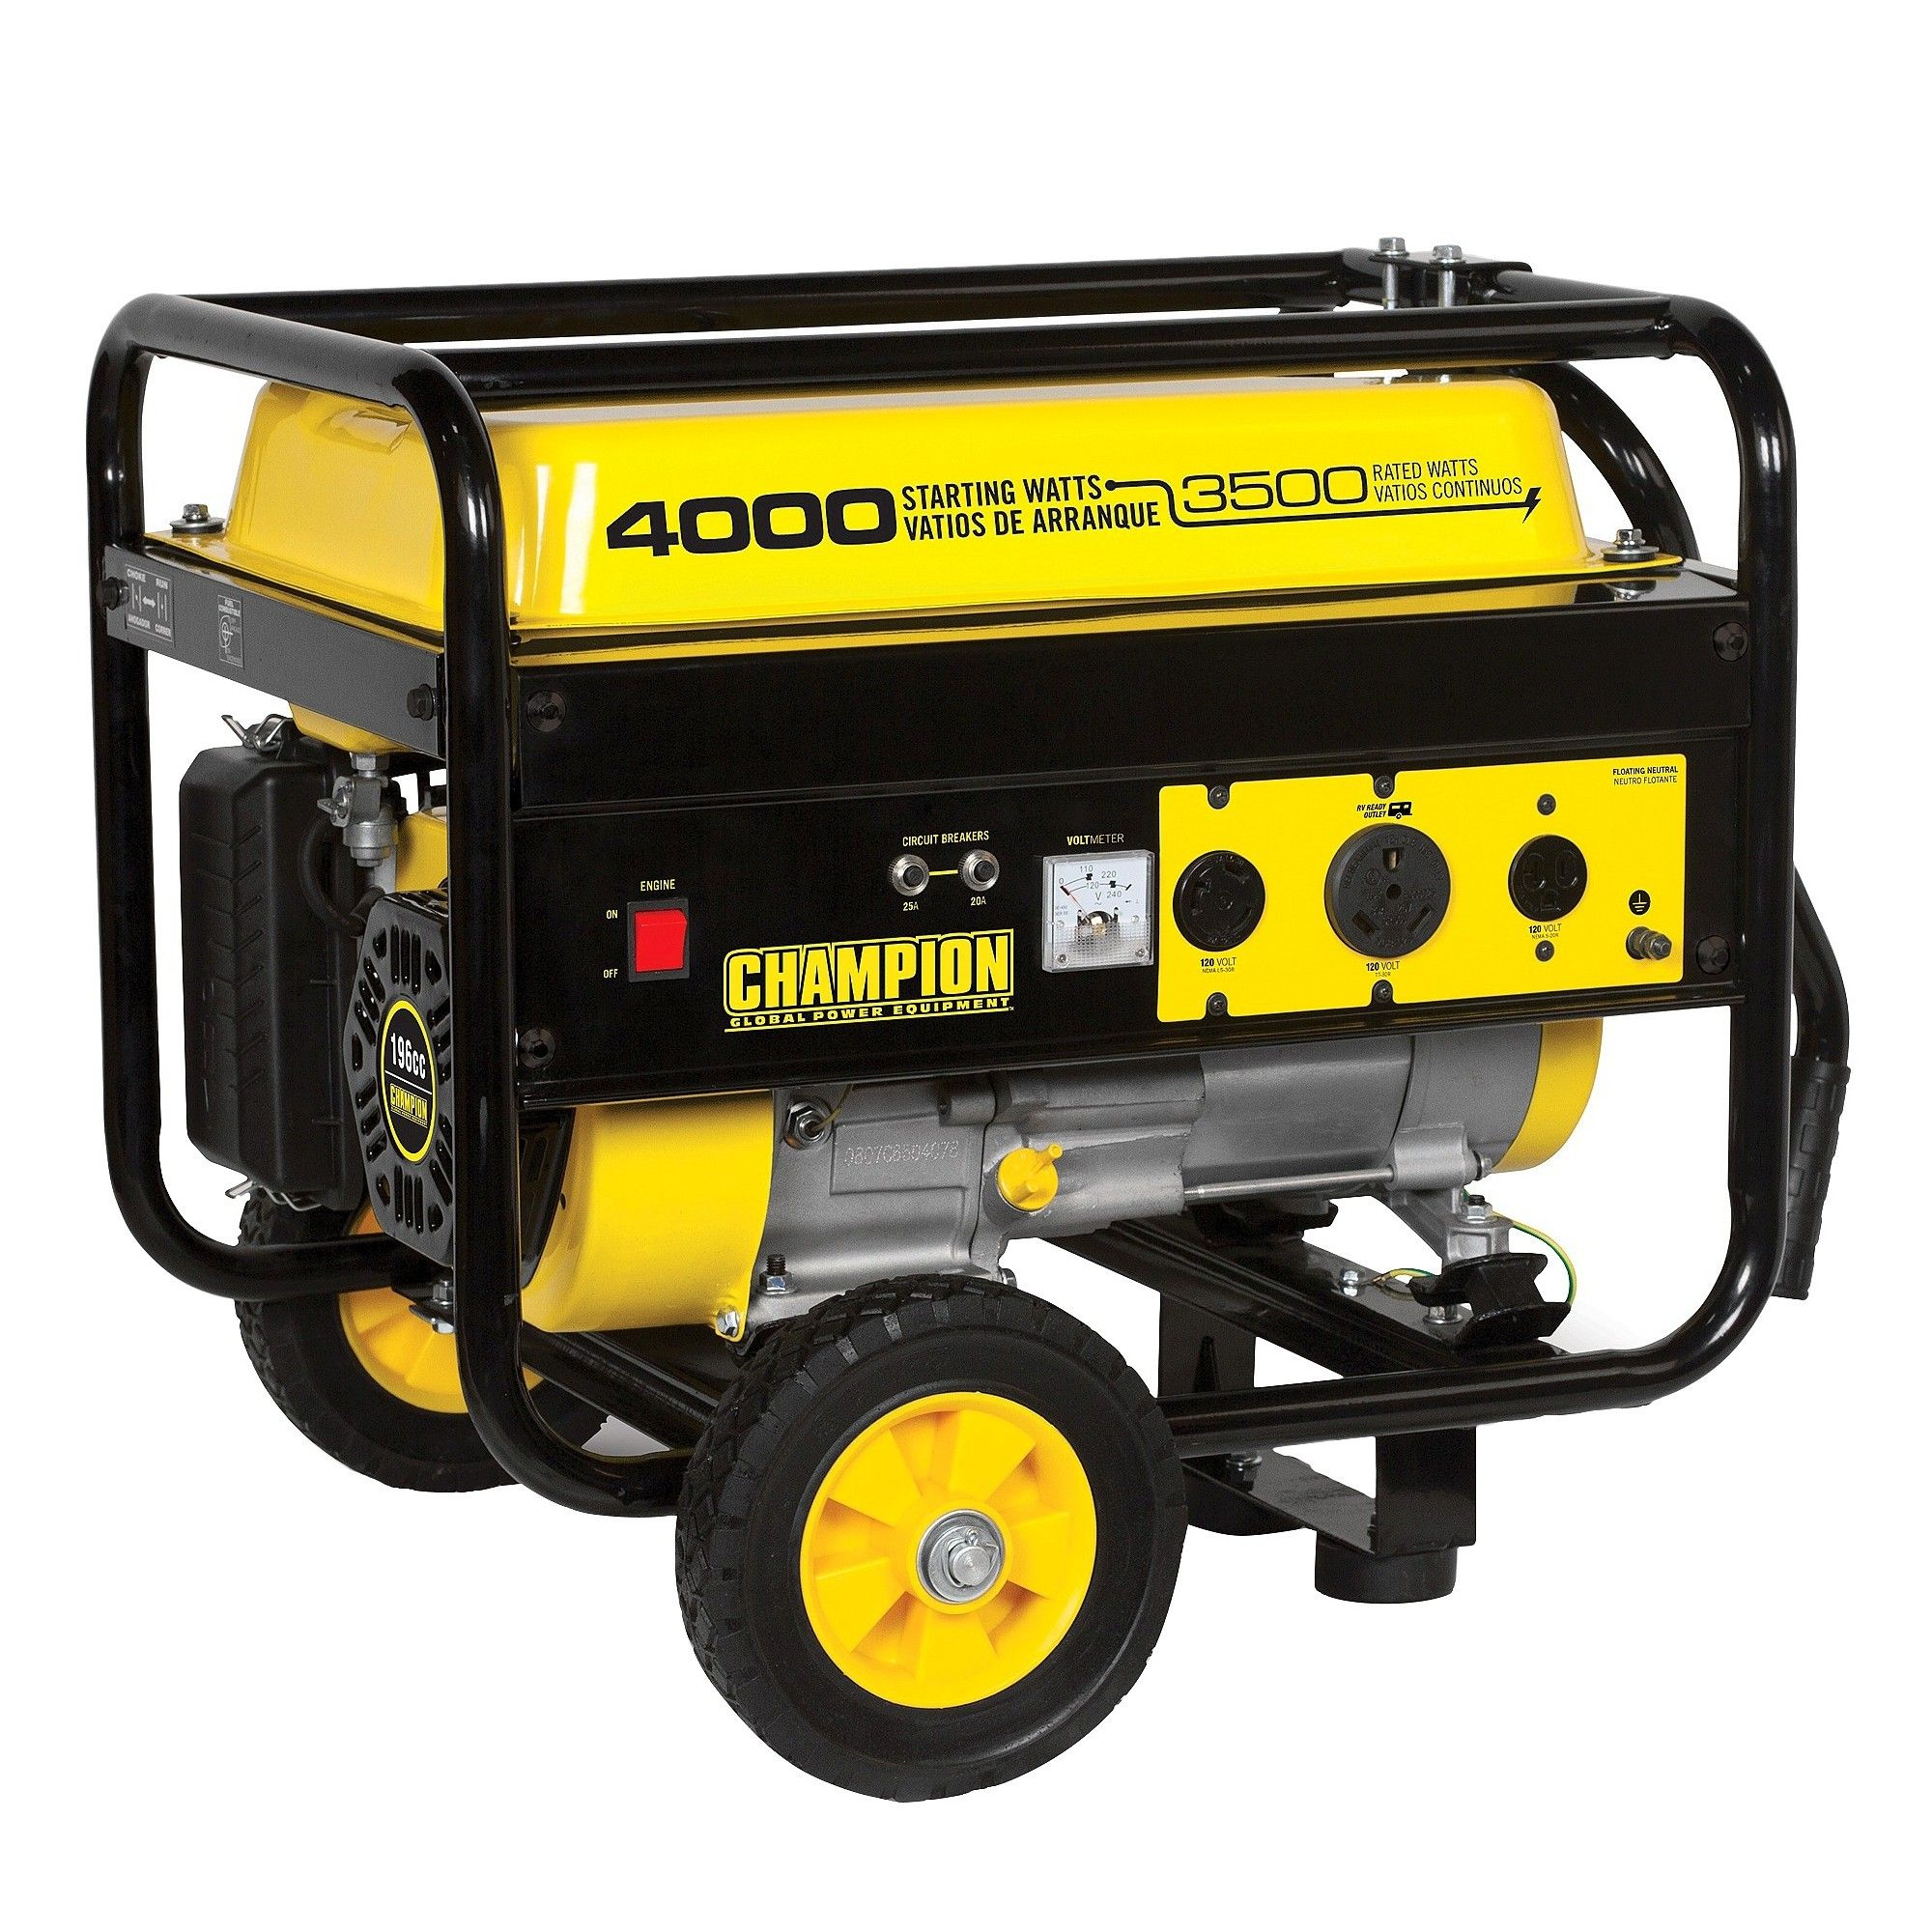 3500W 4000W Generator 196cc Champion Power